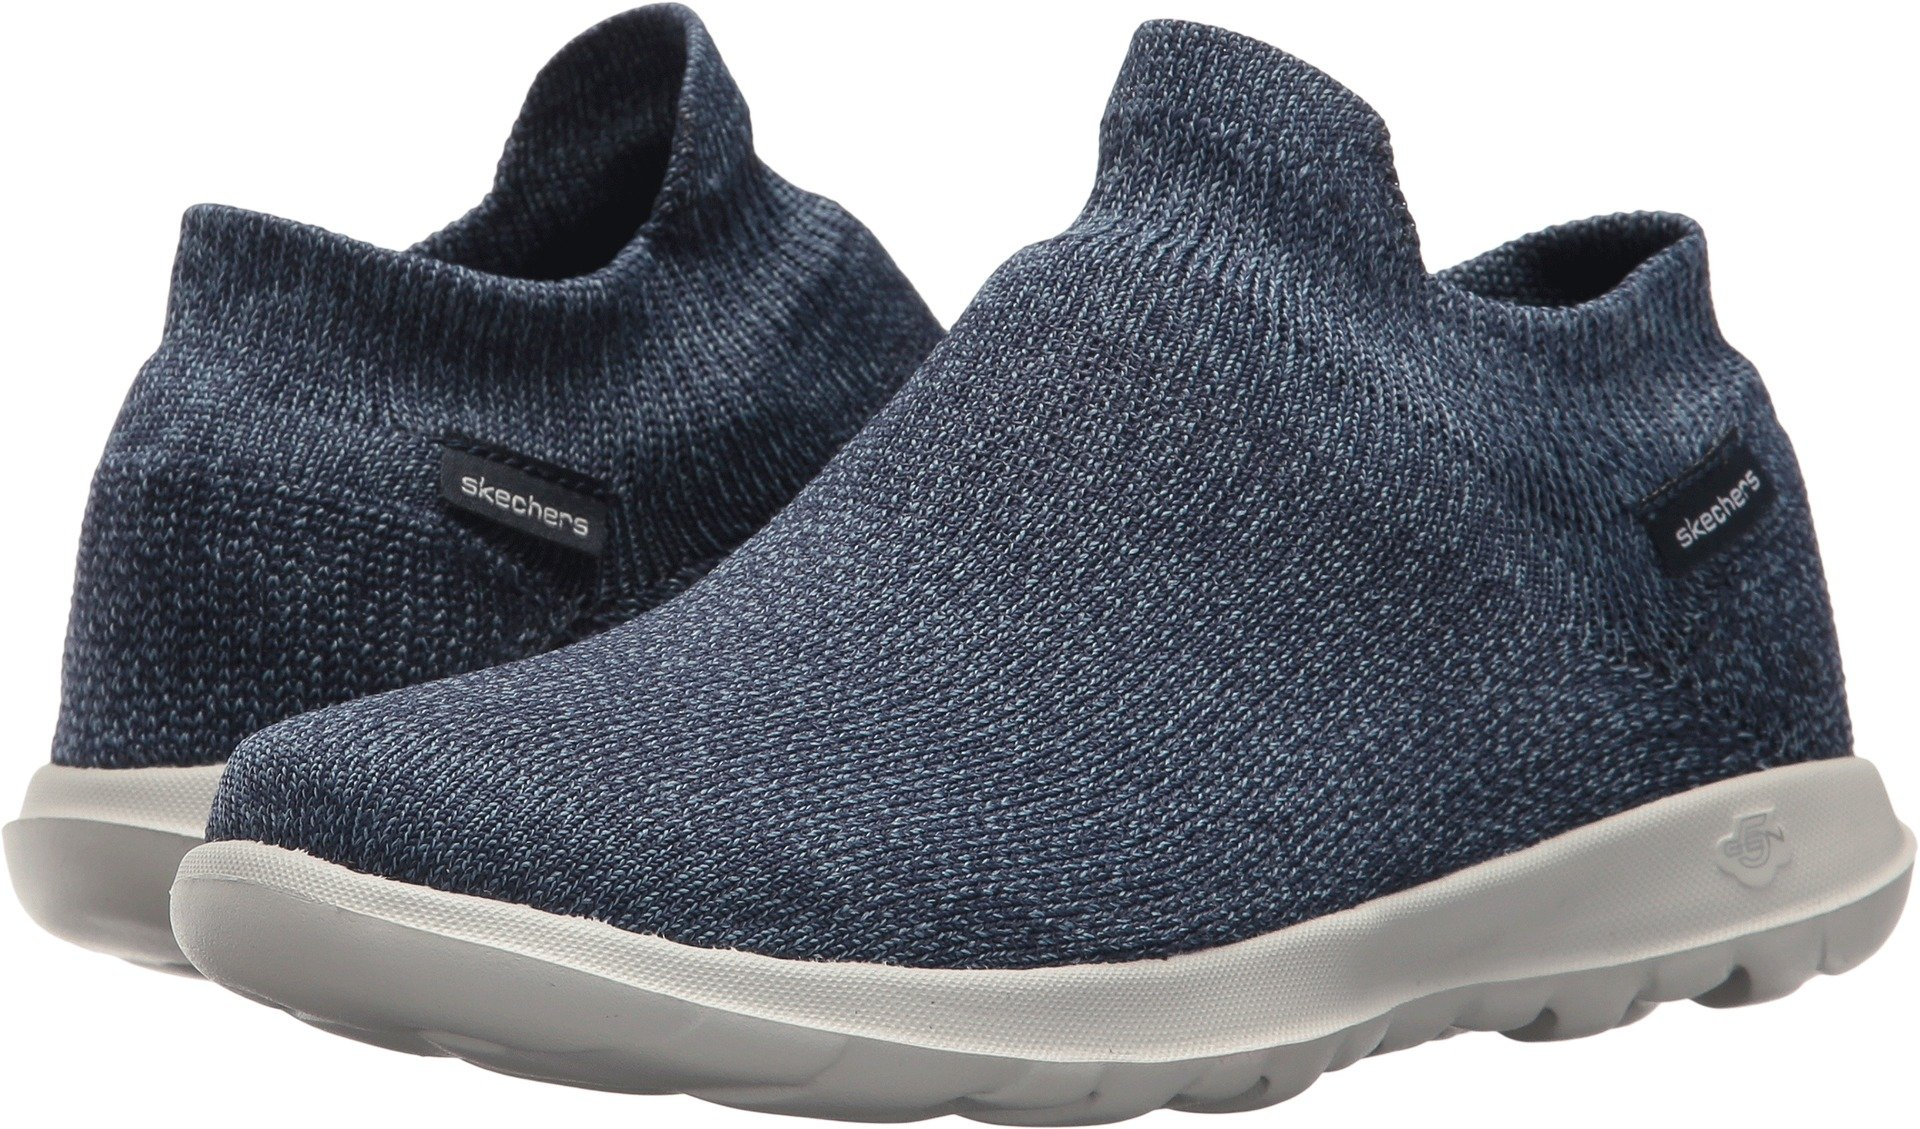 Skechers Performance Women's Go Walk Lite-15372 Sneaker,Navy,8.5 M US